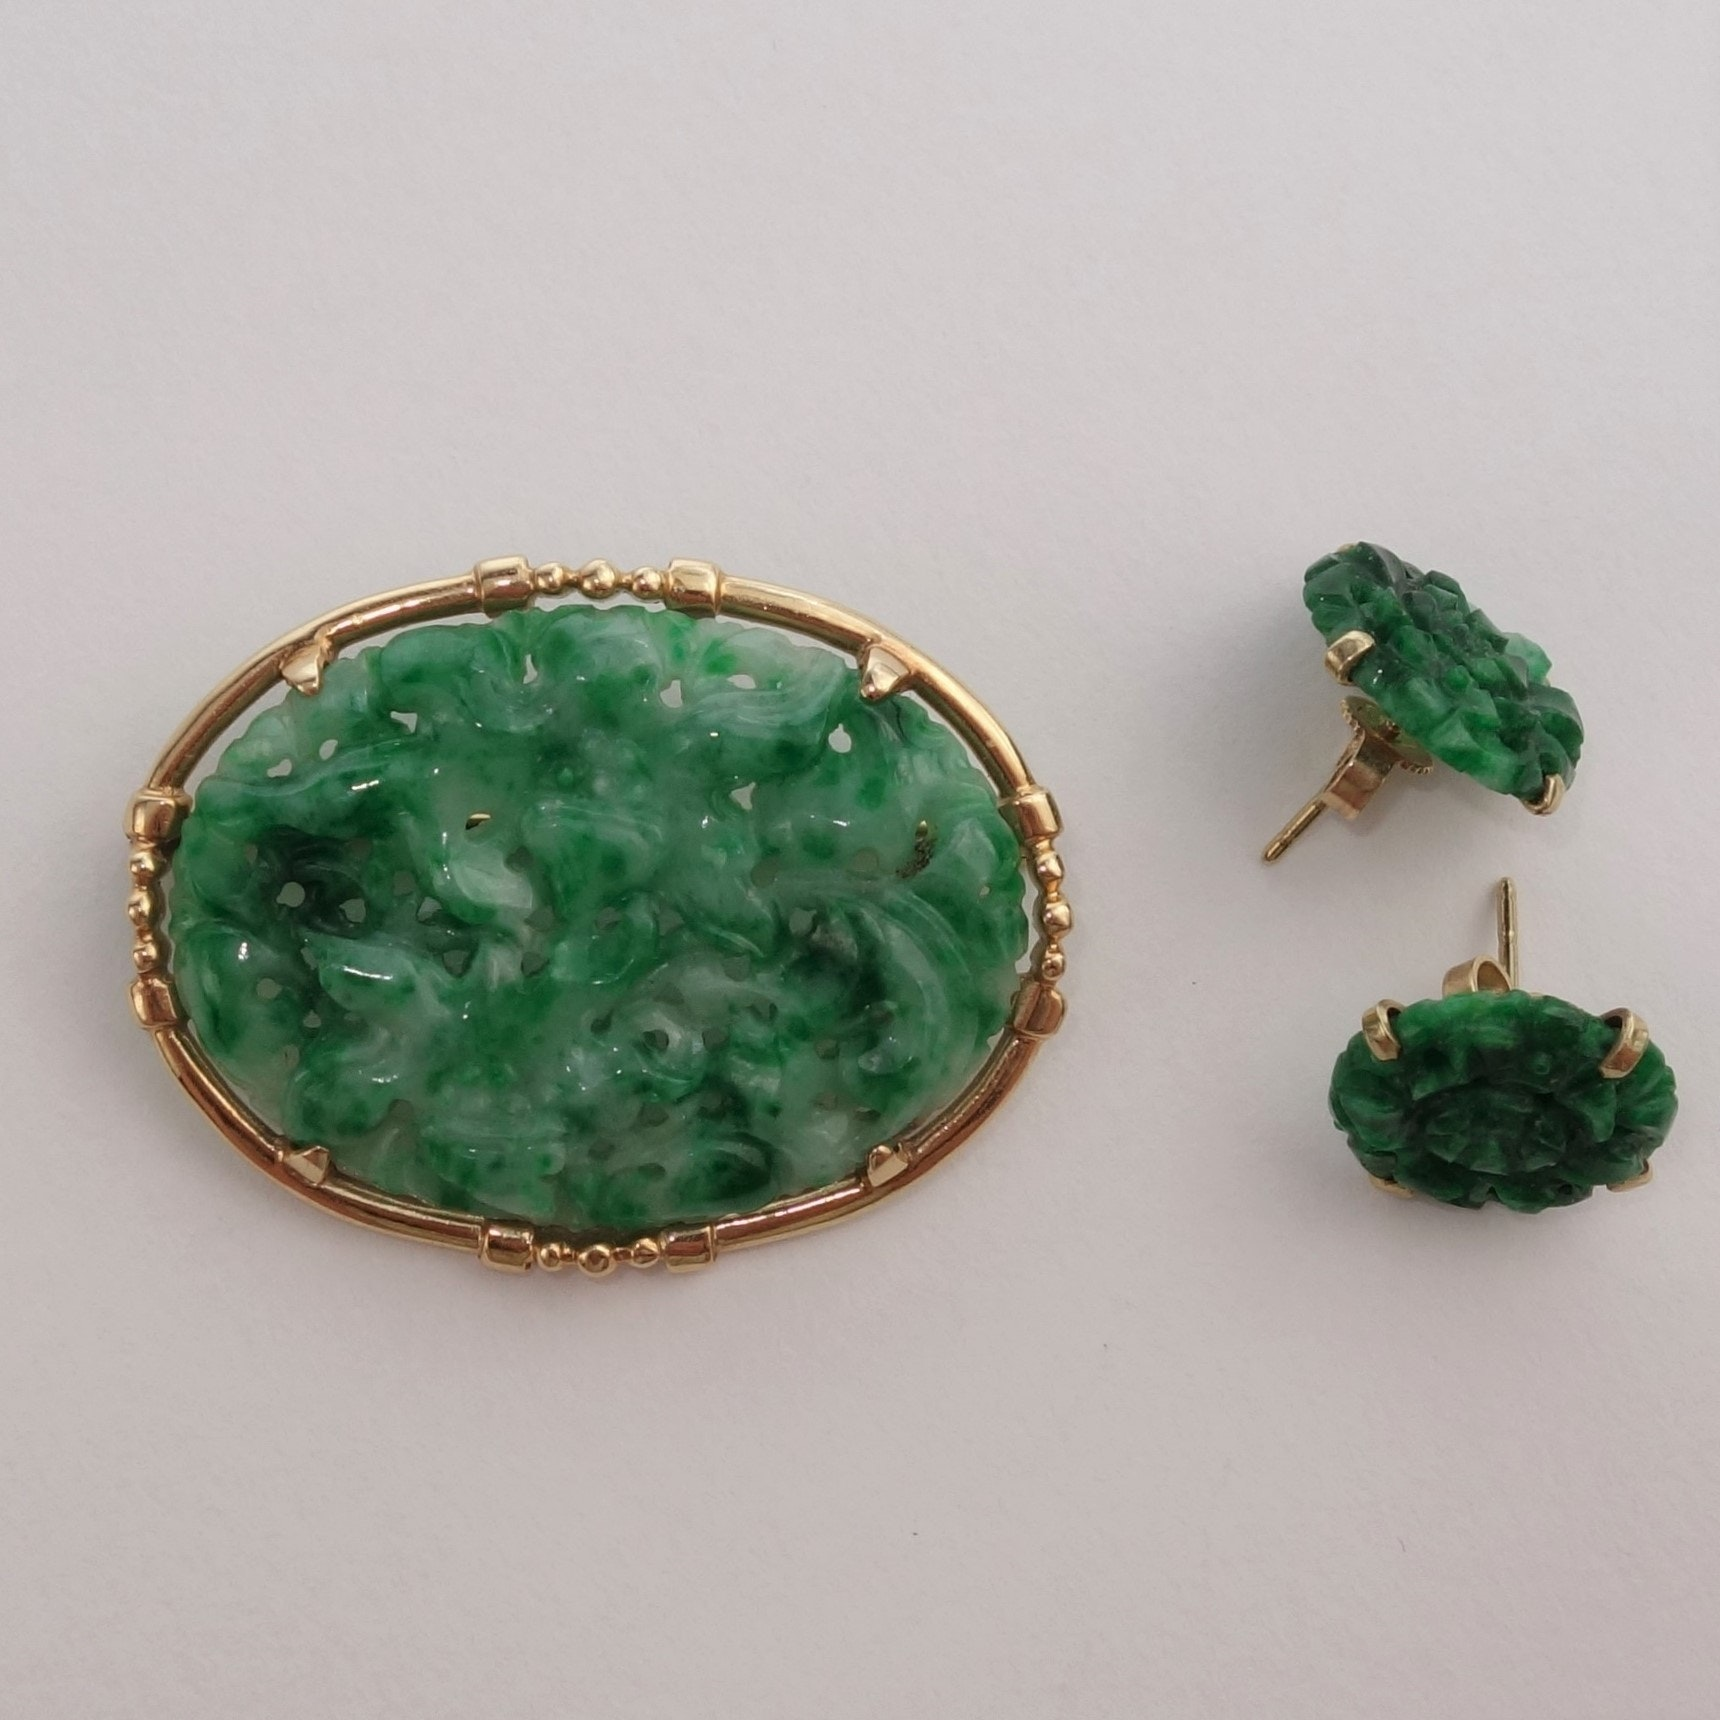 14K Yellow Gold Jadeite Brooch and Earrings